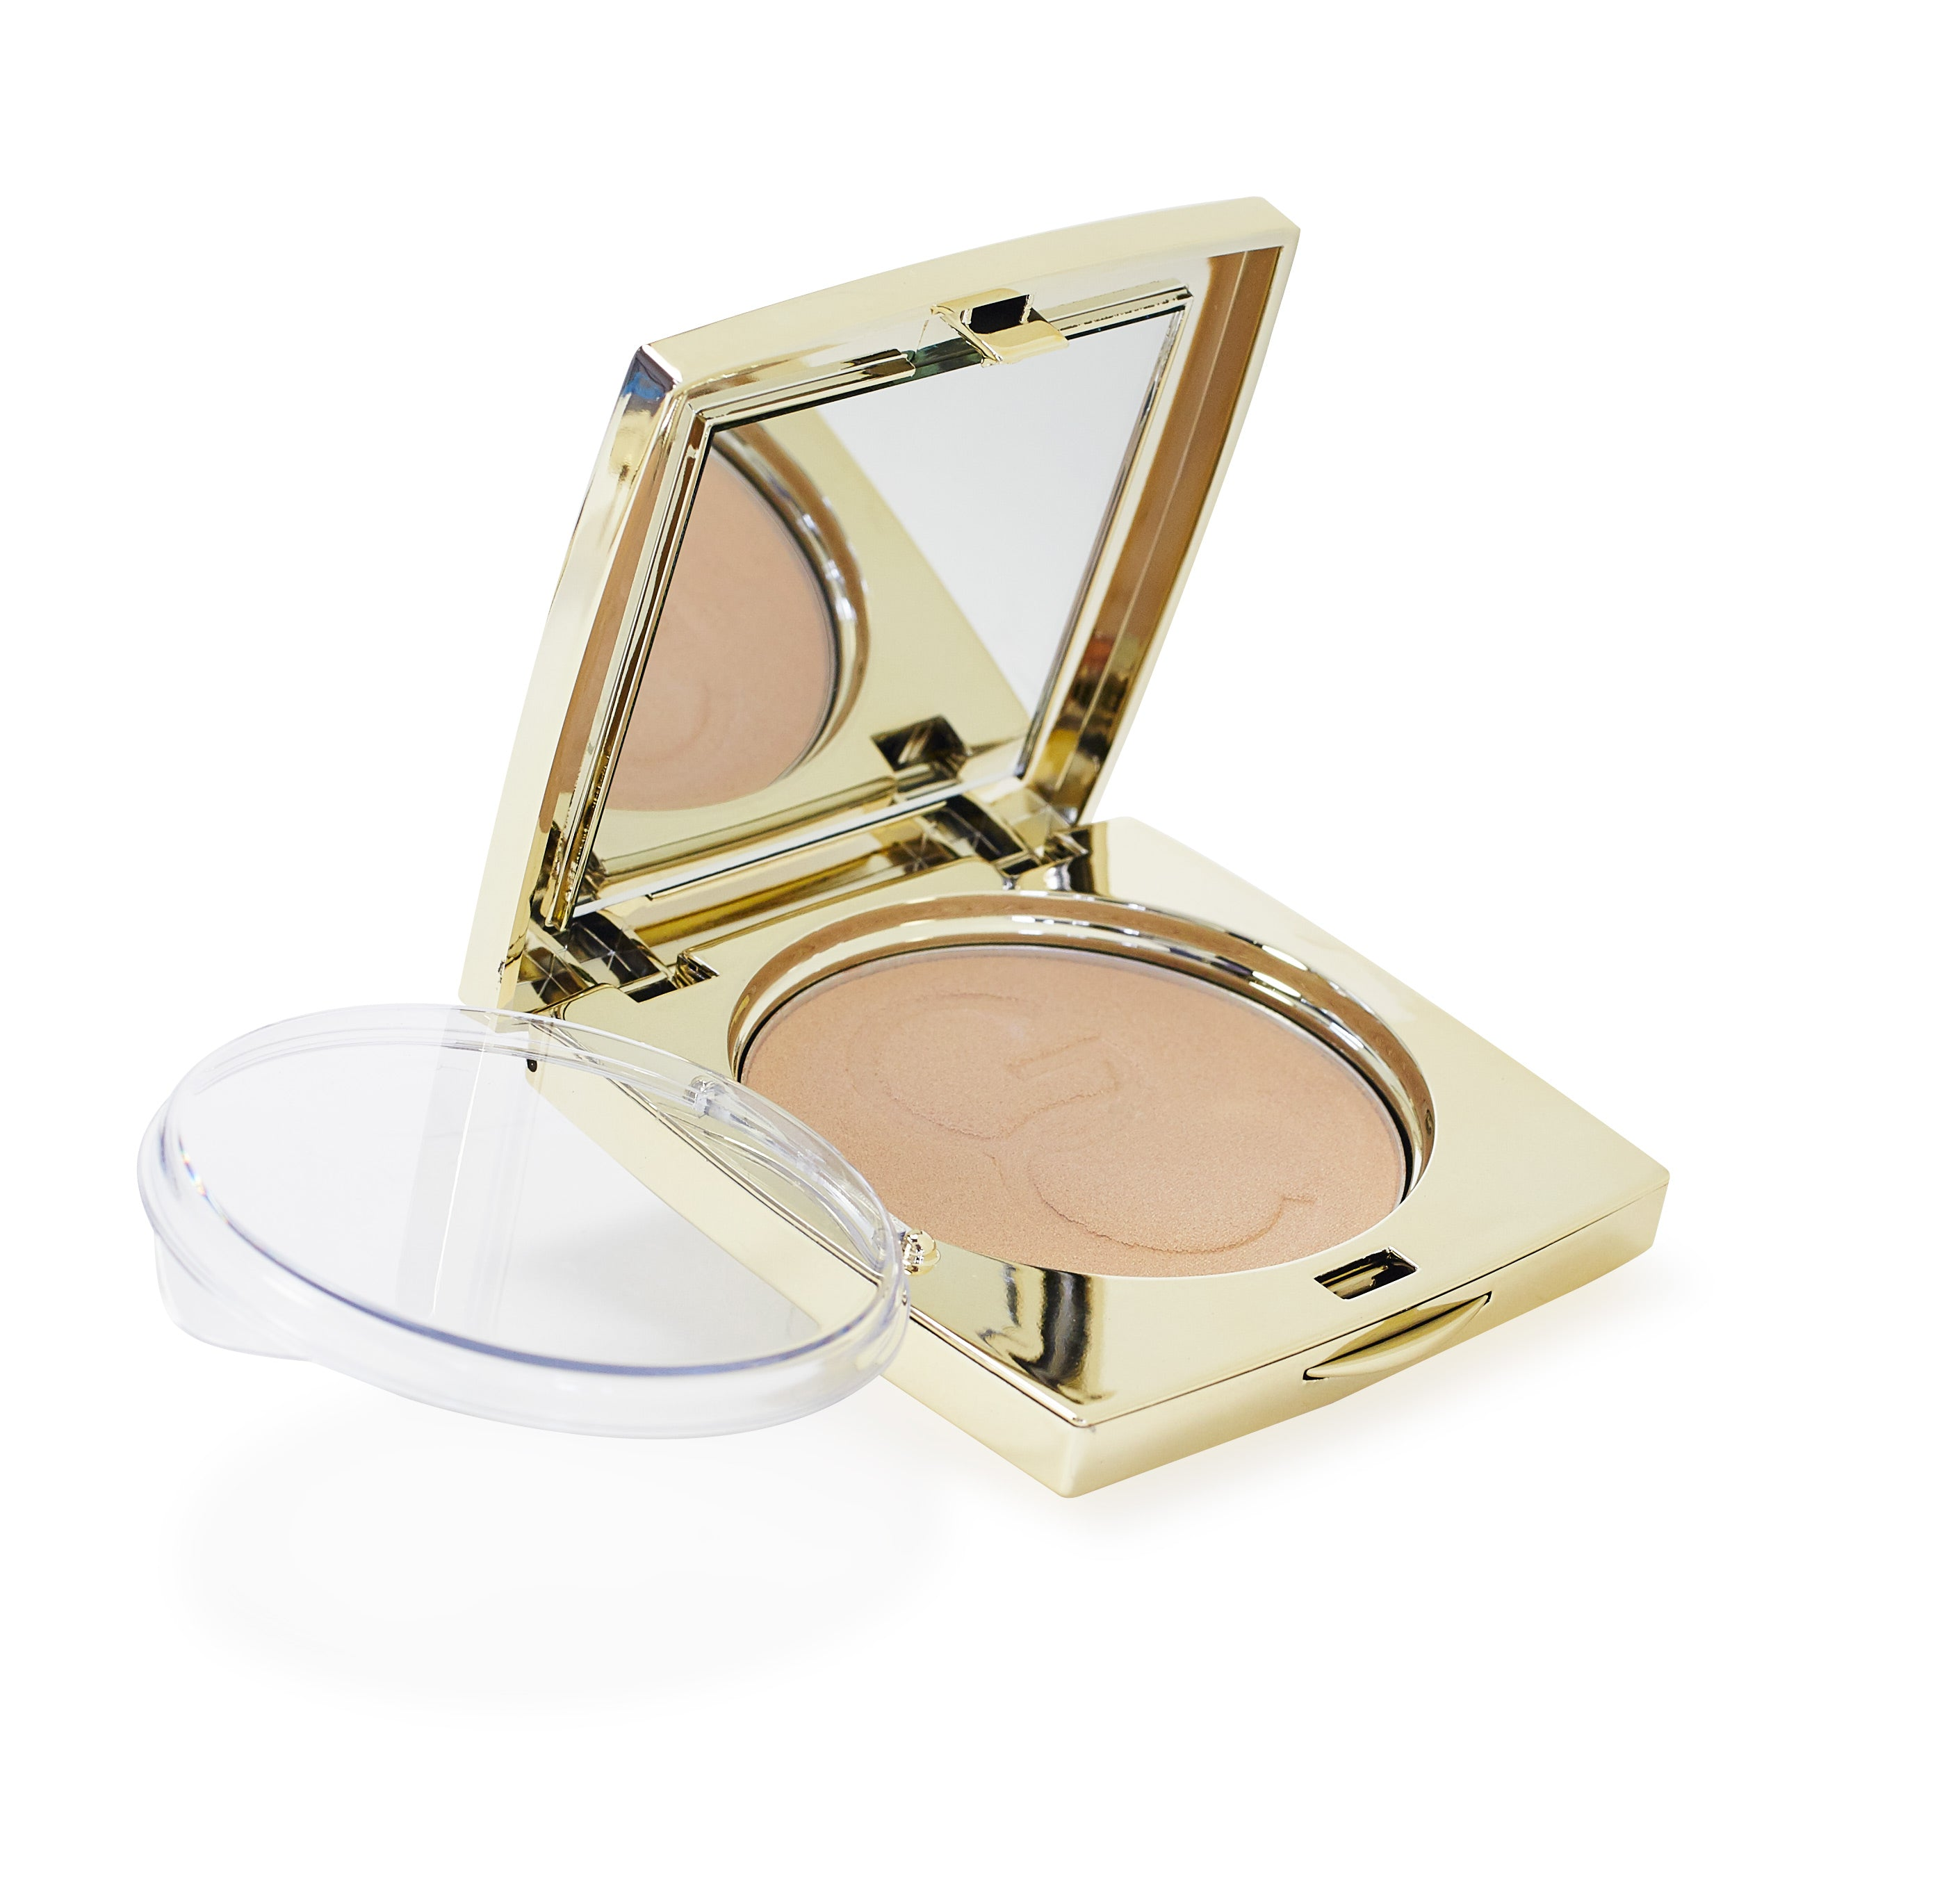 Gerard Cosmetics Star Powder in Audrey - GetDollied Canada